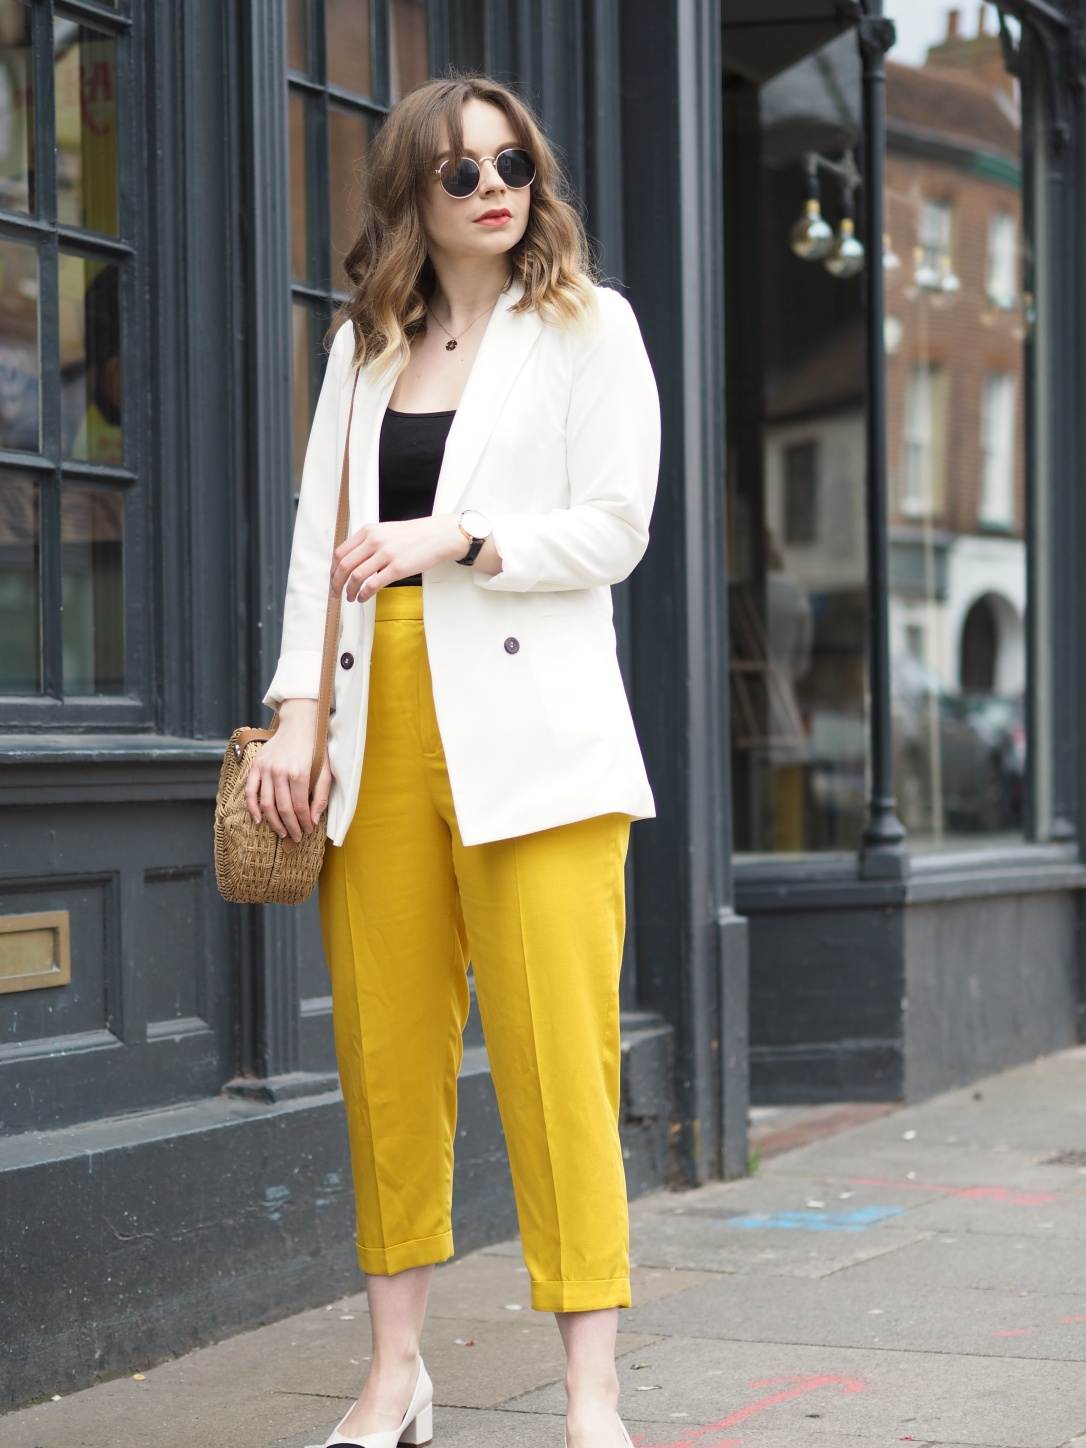 Why I love wearing brights